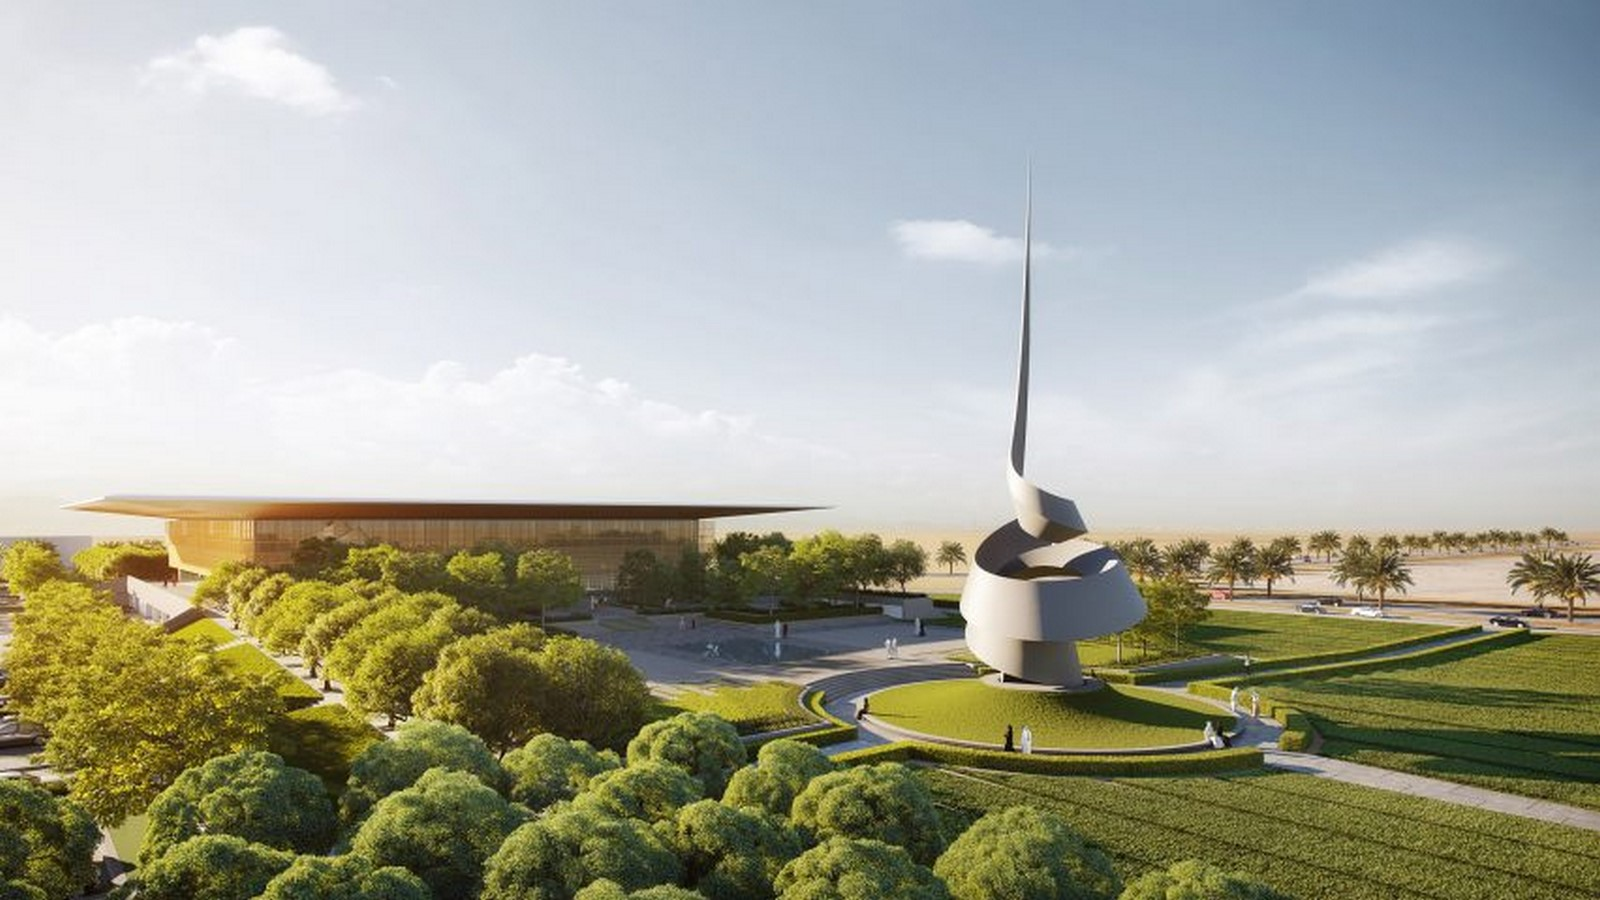 New Library And Culture Centre With Large Floating Roof In Sharjah completed by Foster + Partners - Sheet1